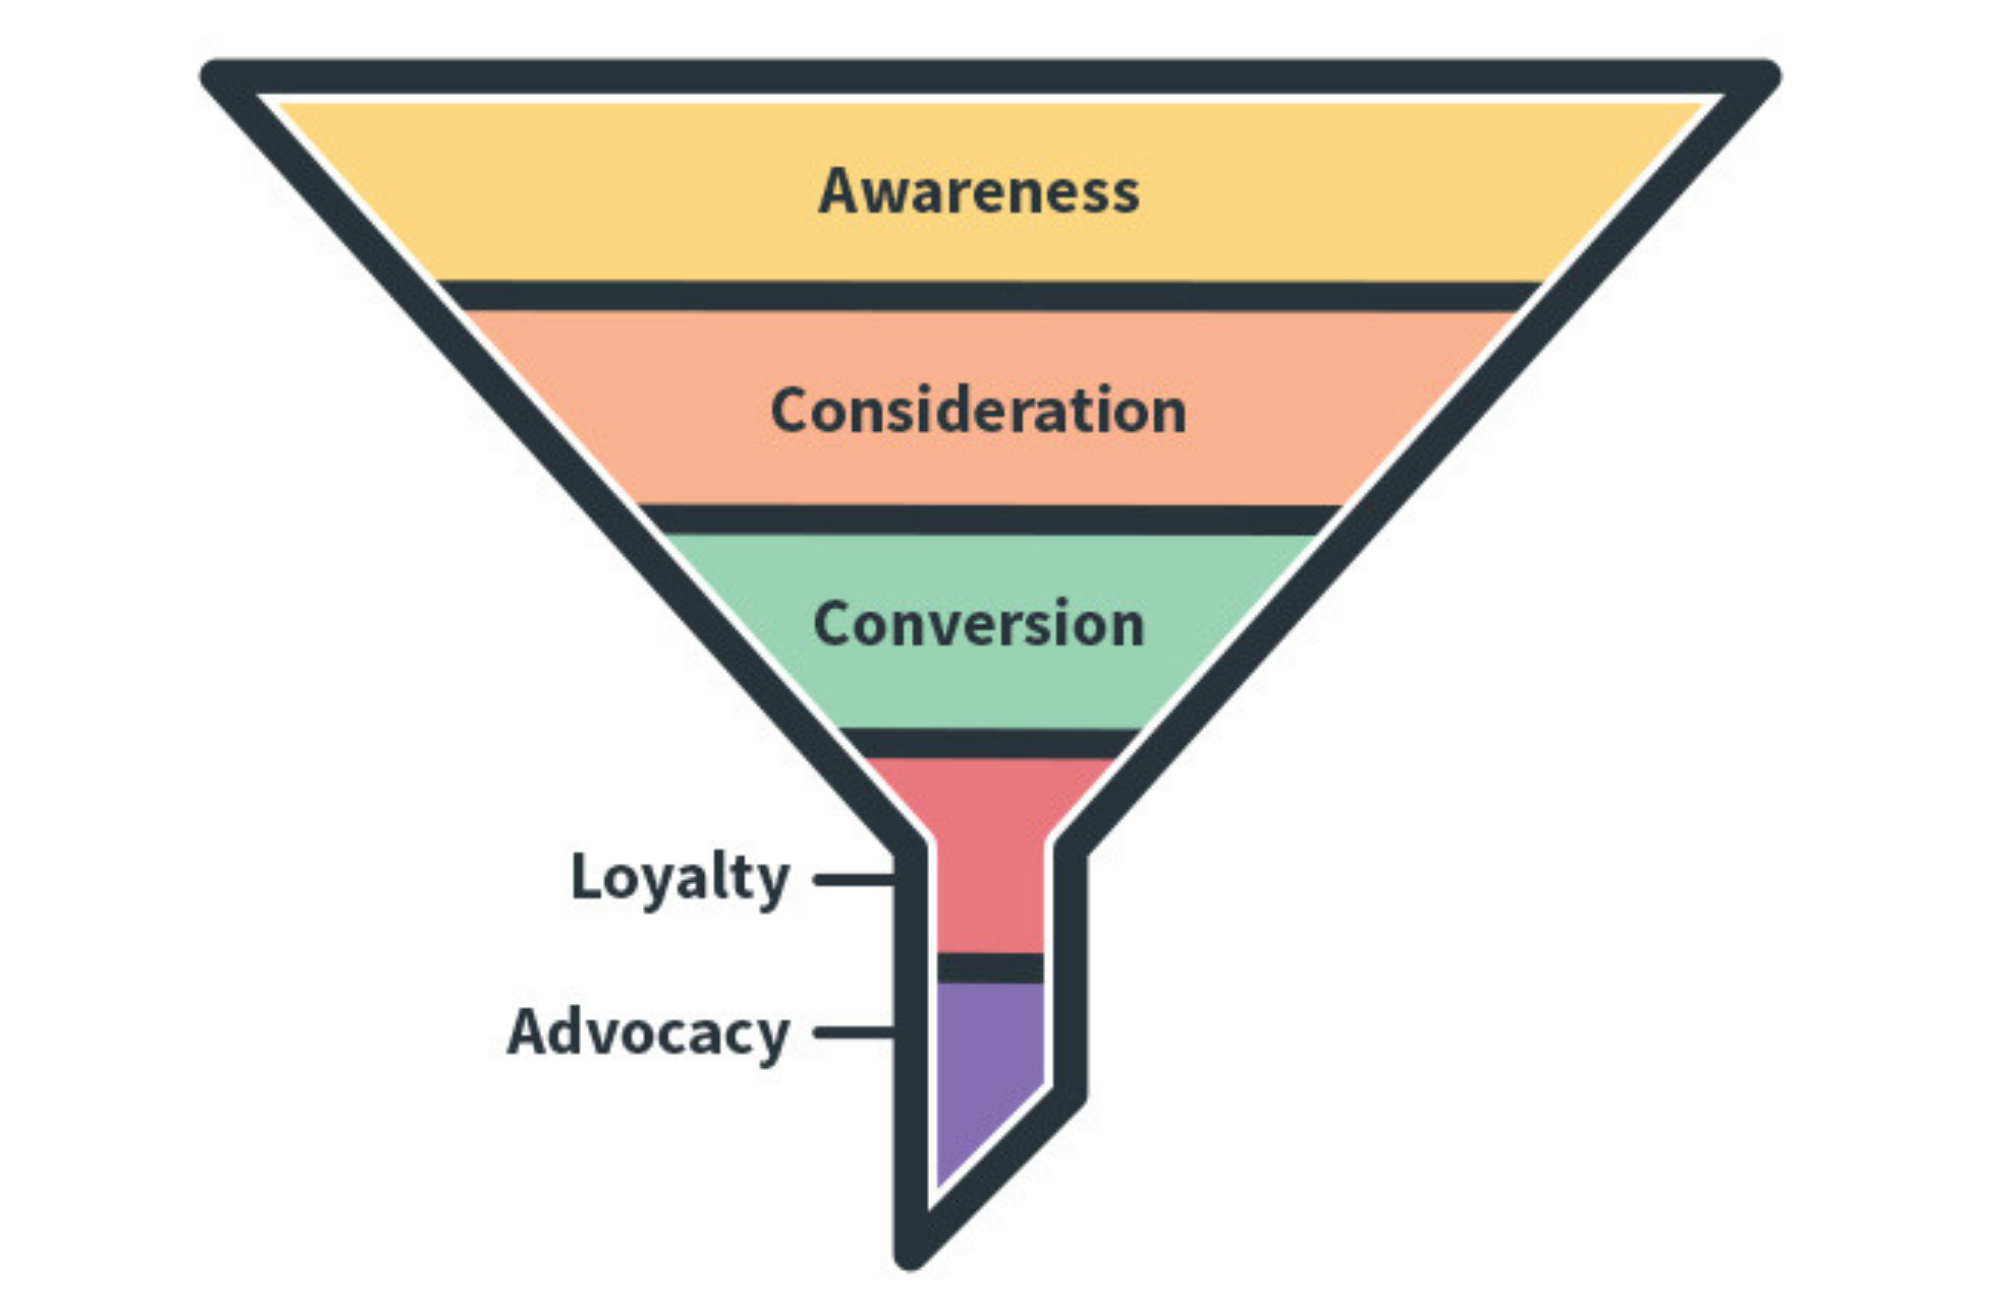 Image of the different levels of the marketing funnel. Awareness is first and largest level.